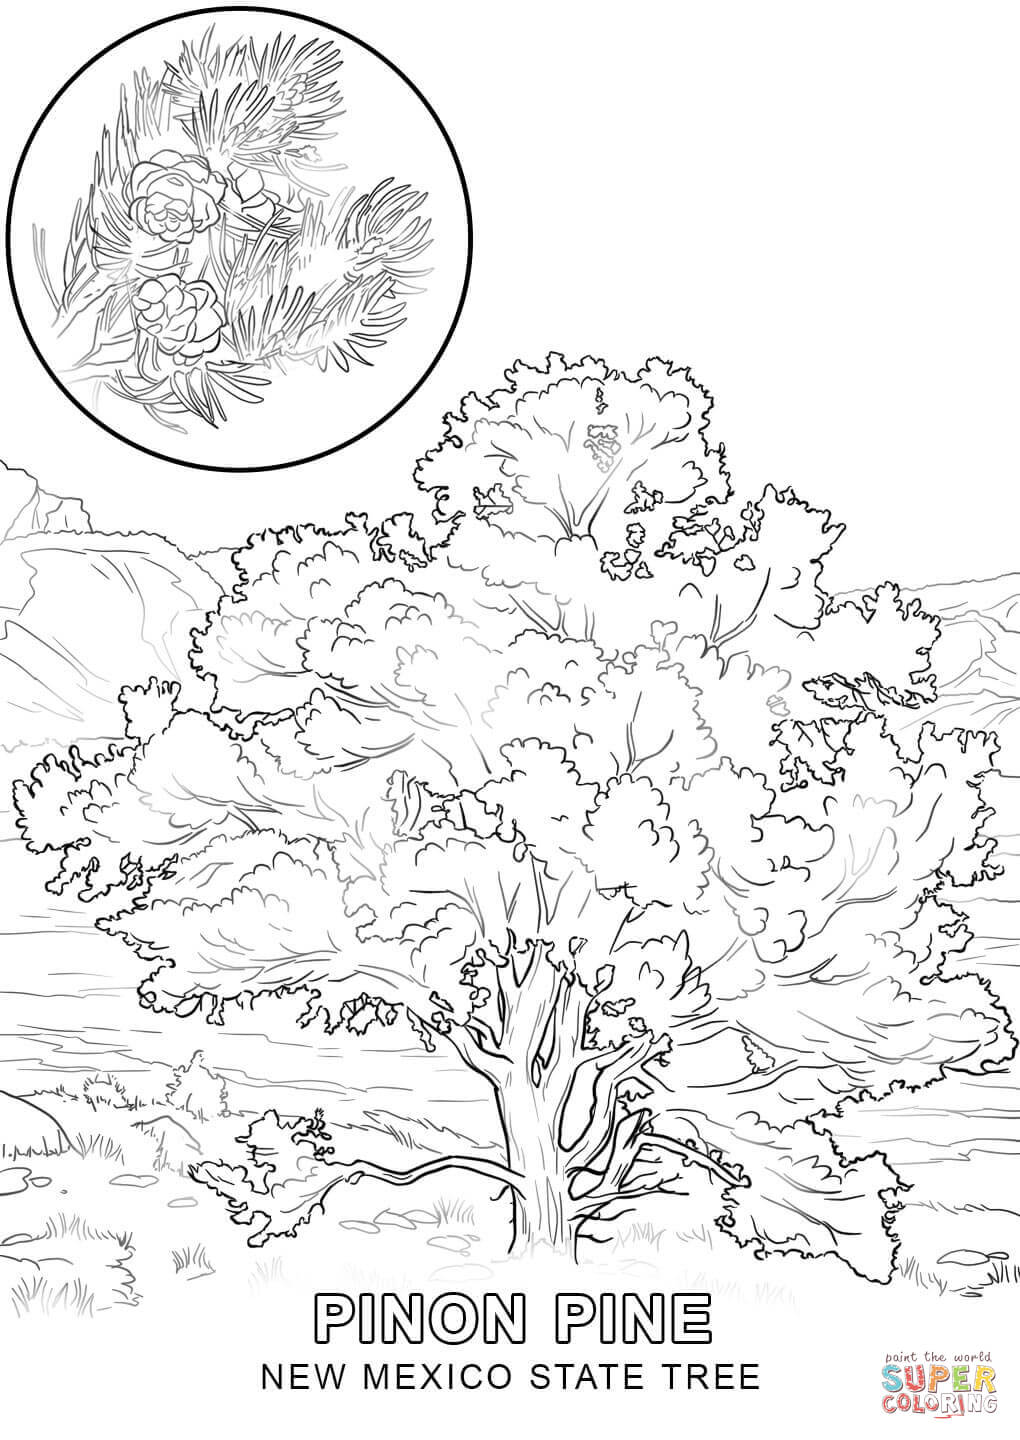 state tree coloring pages indiana state tree coloring page free printable coloring coloring tree state pages